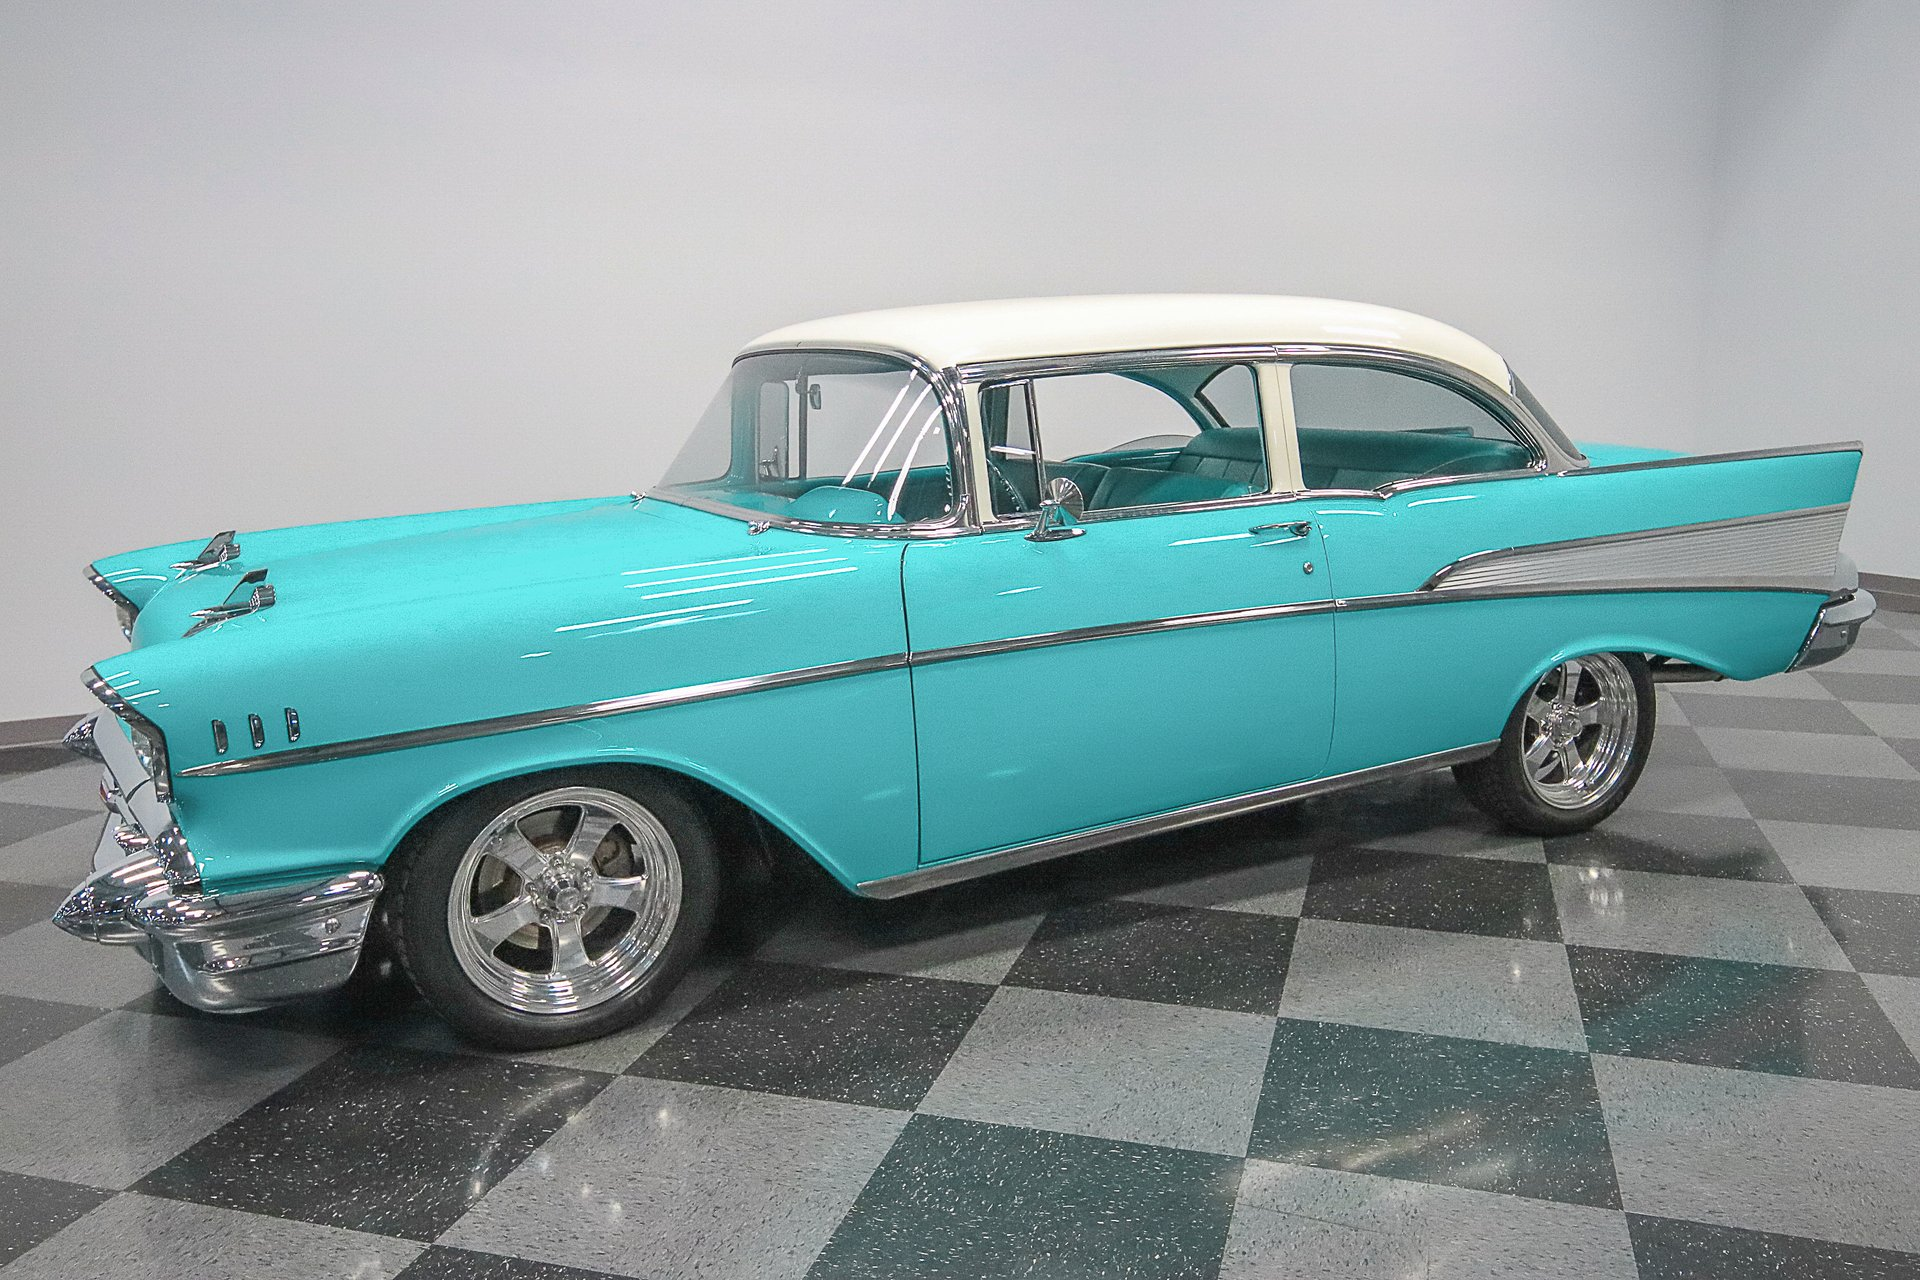 1957 Chevrolet Bel Air Streetside Classics The Nations Trusted Chevy 2 Door Sedan Spincar View Play Video 360